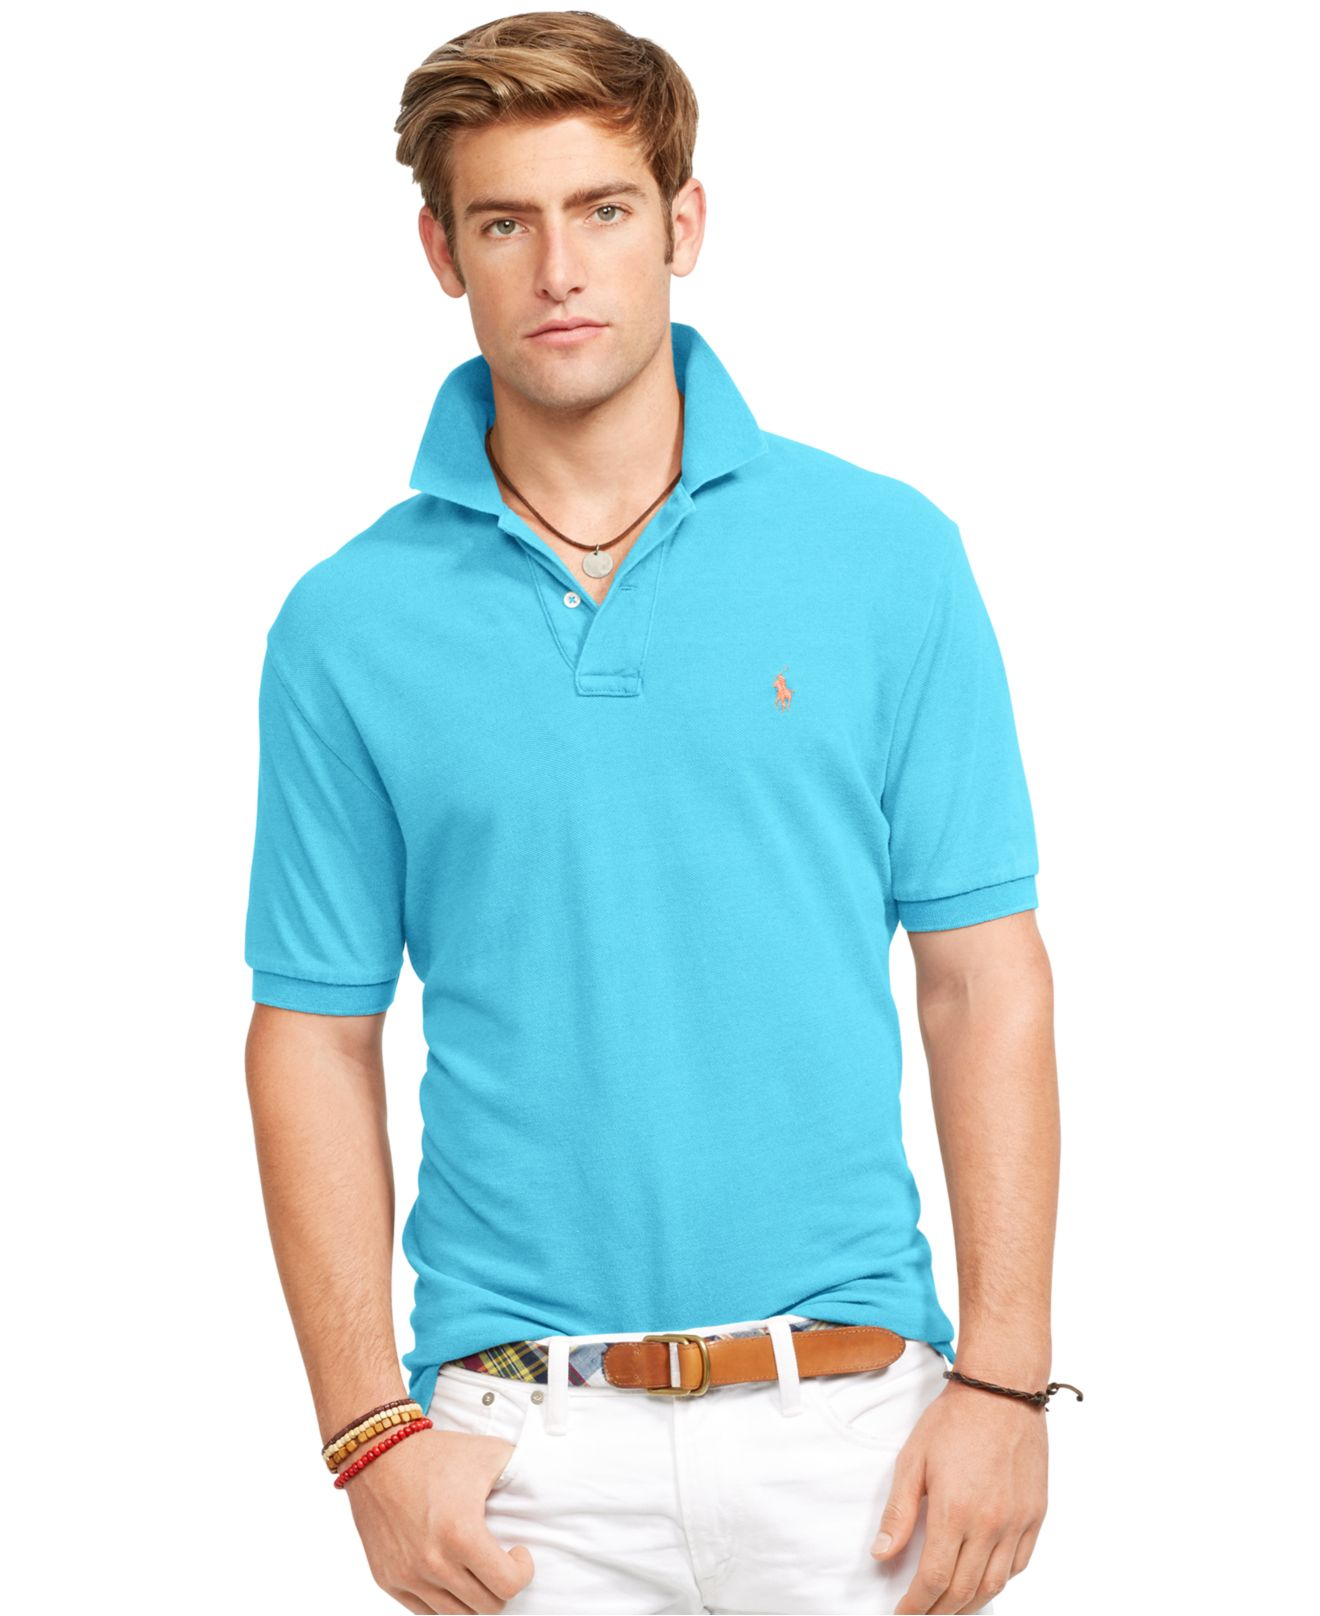 Lyst - Polo Ralph Lauren Classic-fit Mesh Polo Shirt in Blue for Men 32795398c8cc